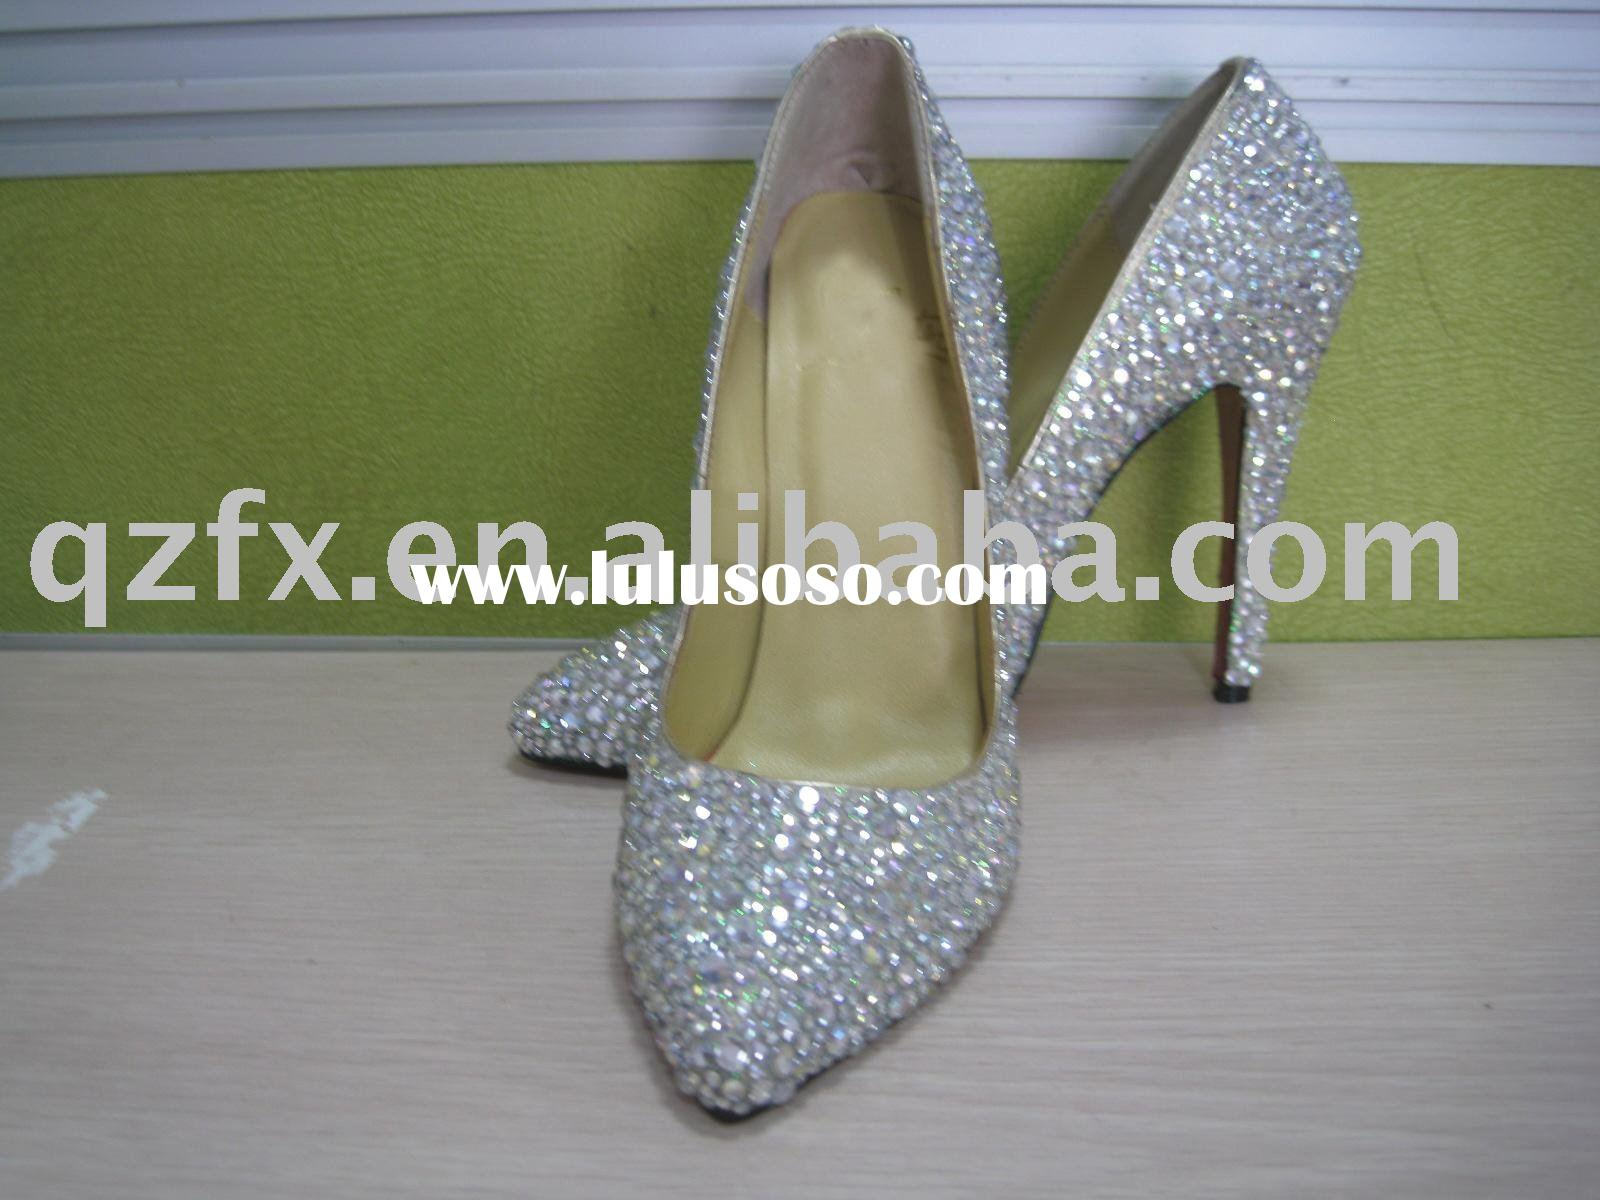 Elegant white crystal wedding shoes bridal shoes high heel party shoes